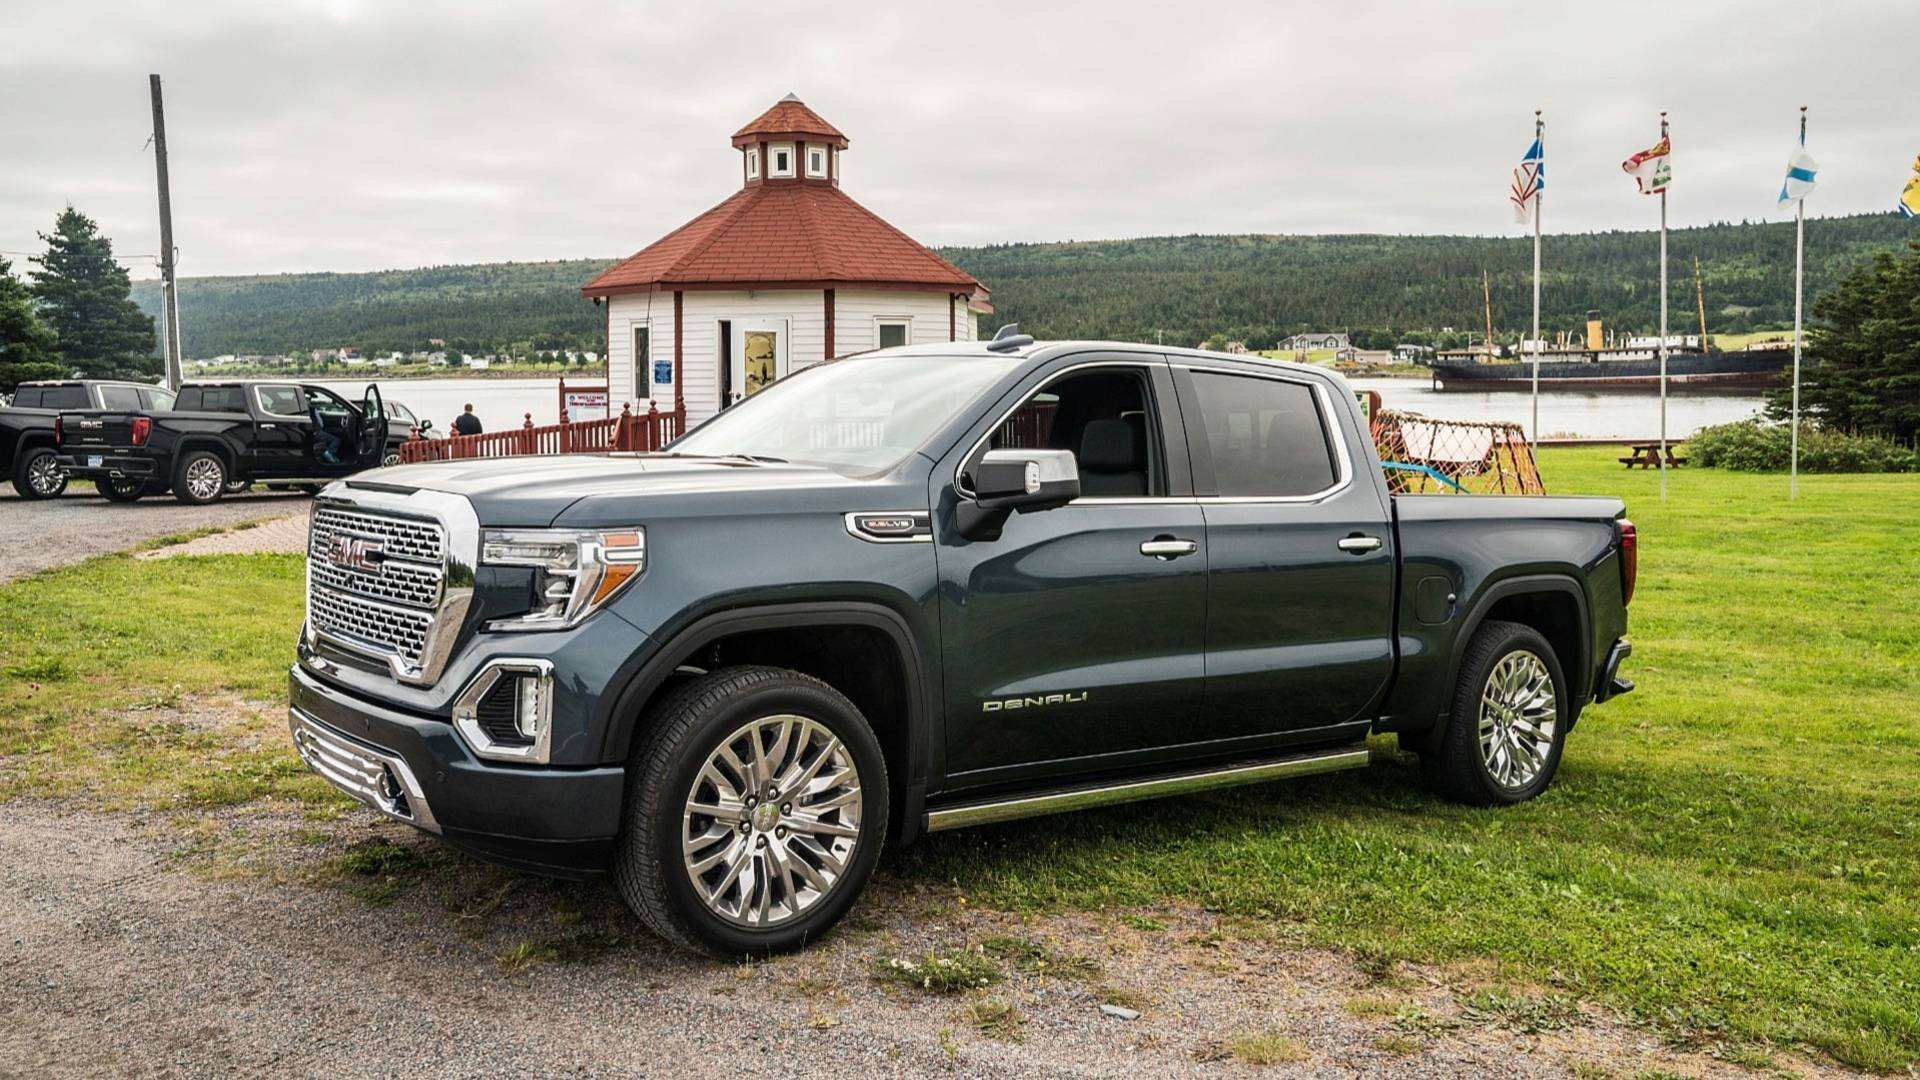 85 Concept of 2019 Gmc Release Specs and Review for 2019 Gmc Release